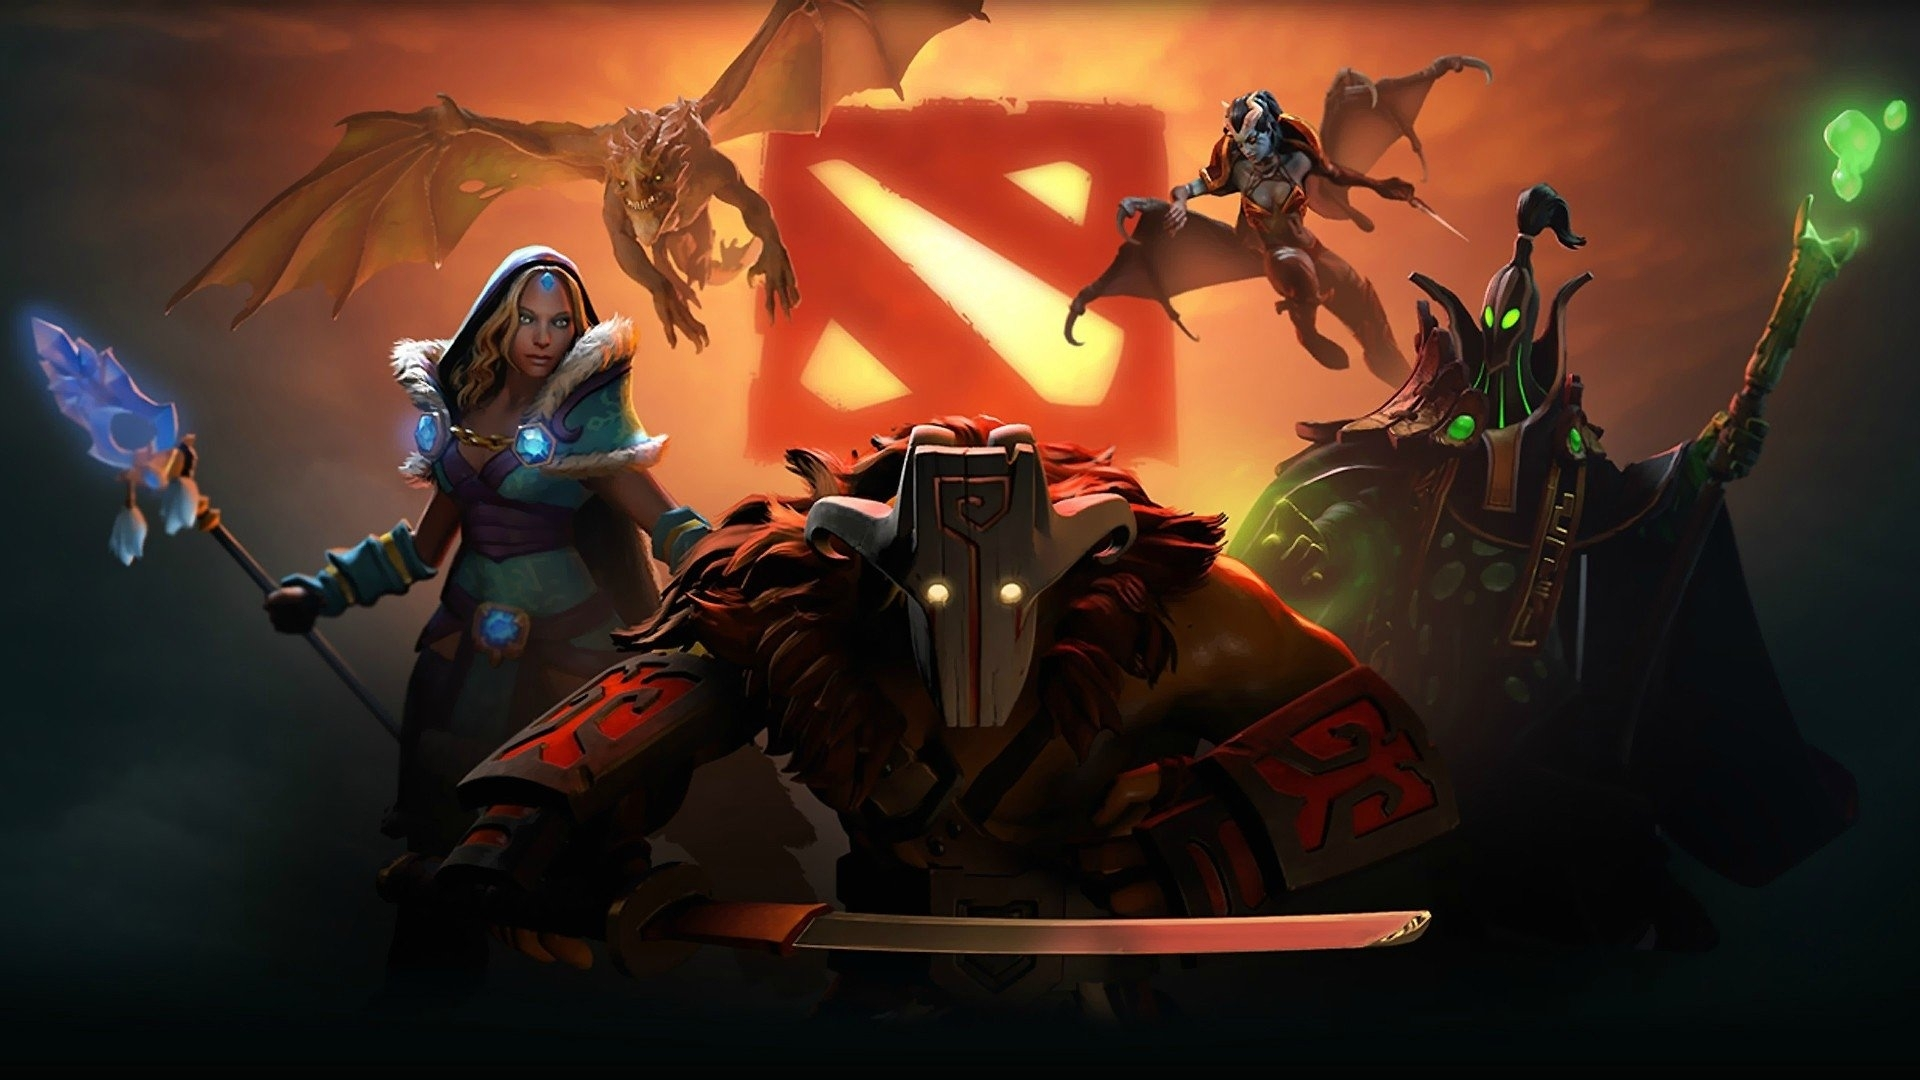 dota 2 full hd wallpaper and background image | 1920x1080 | id:474206